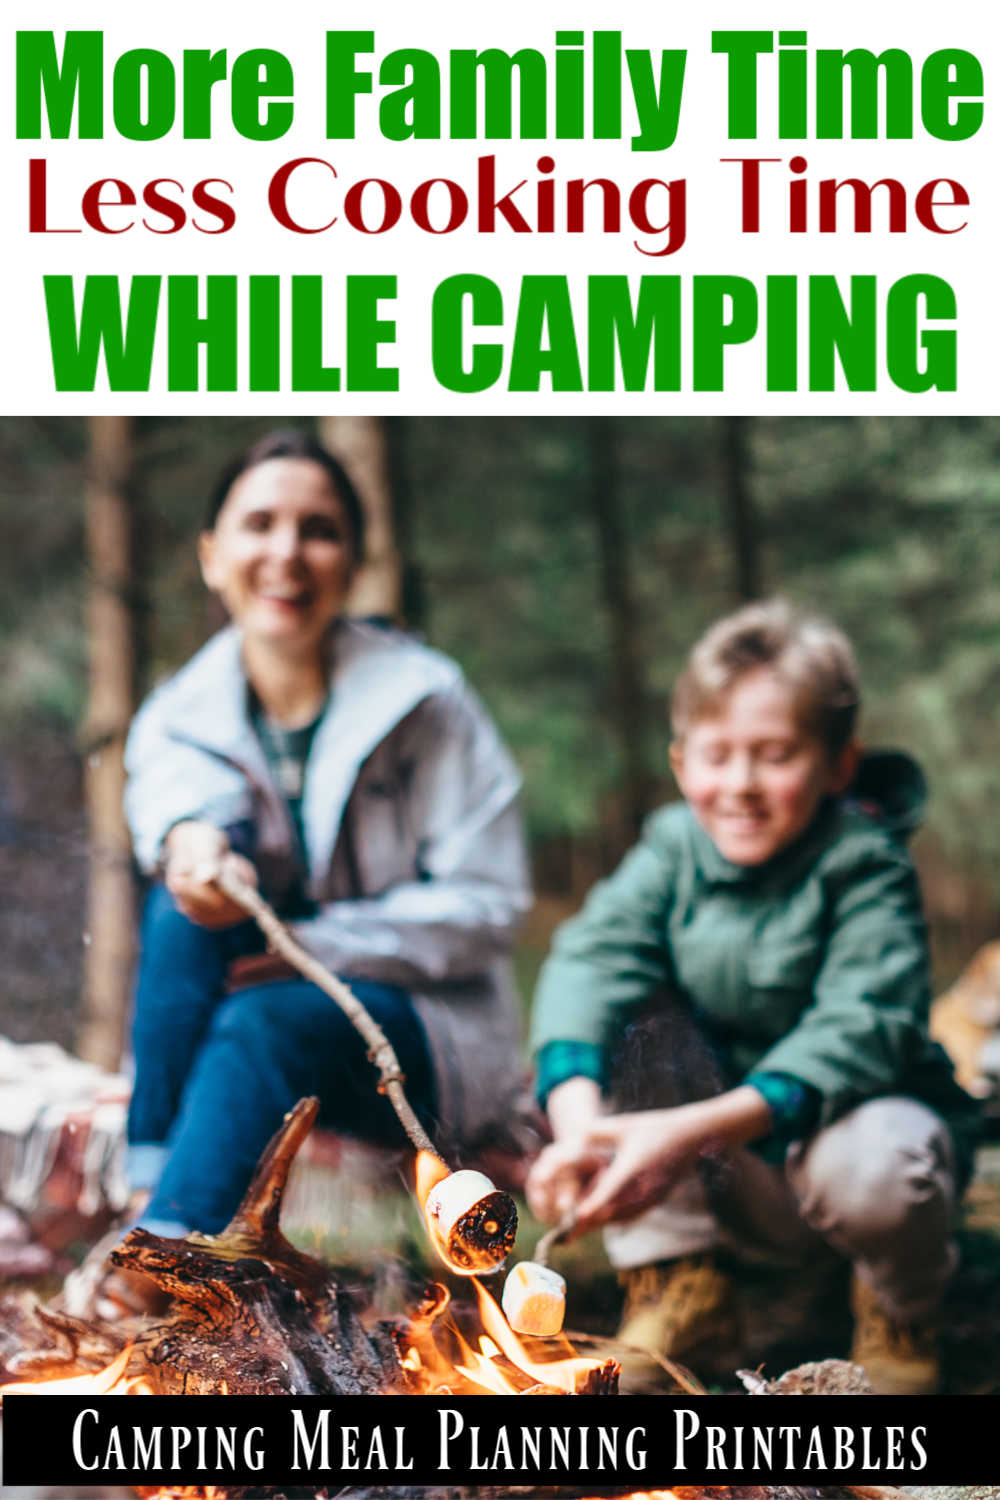 Camping Checklist Printable – Never Forget Anything At Home!